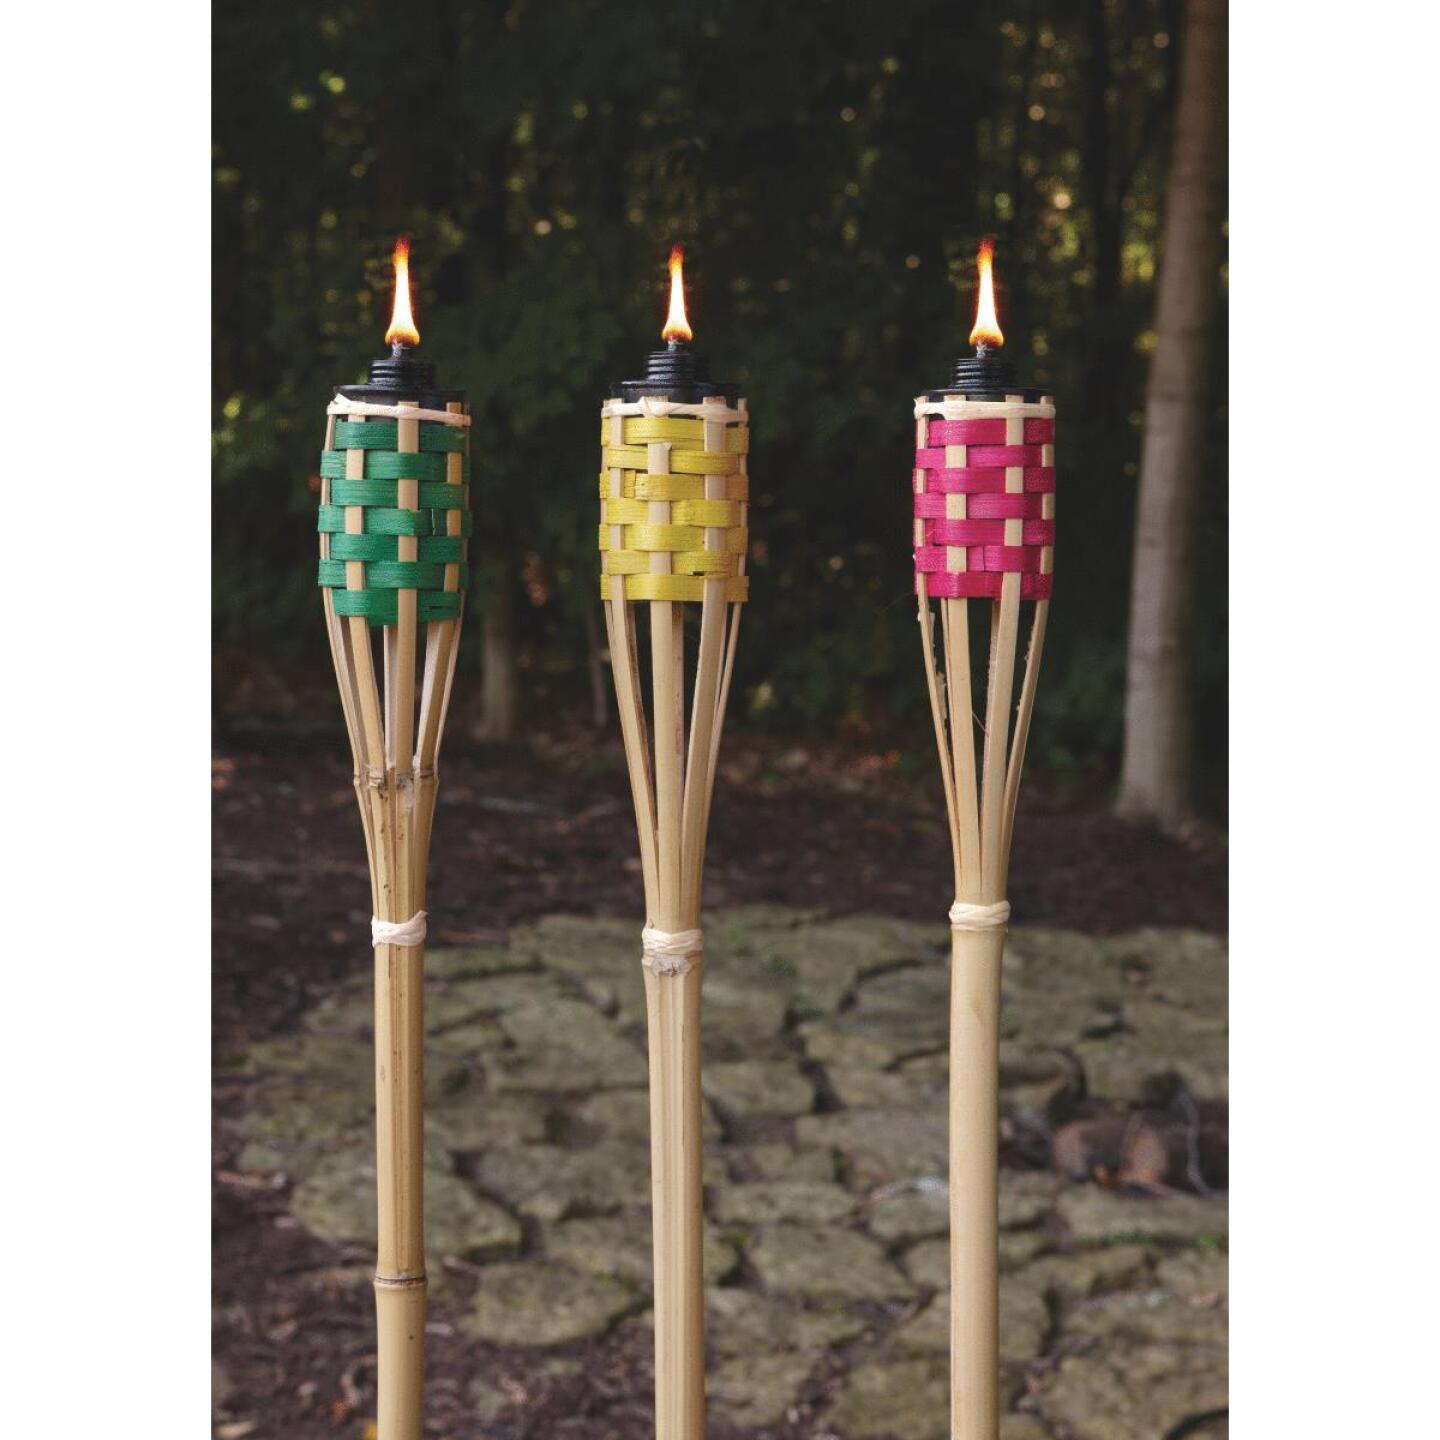 Outdoor Expressions 4 Ft. Assorted Color Bamboo Party Patio Torch Image 6